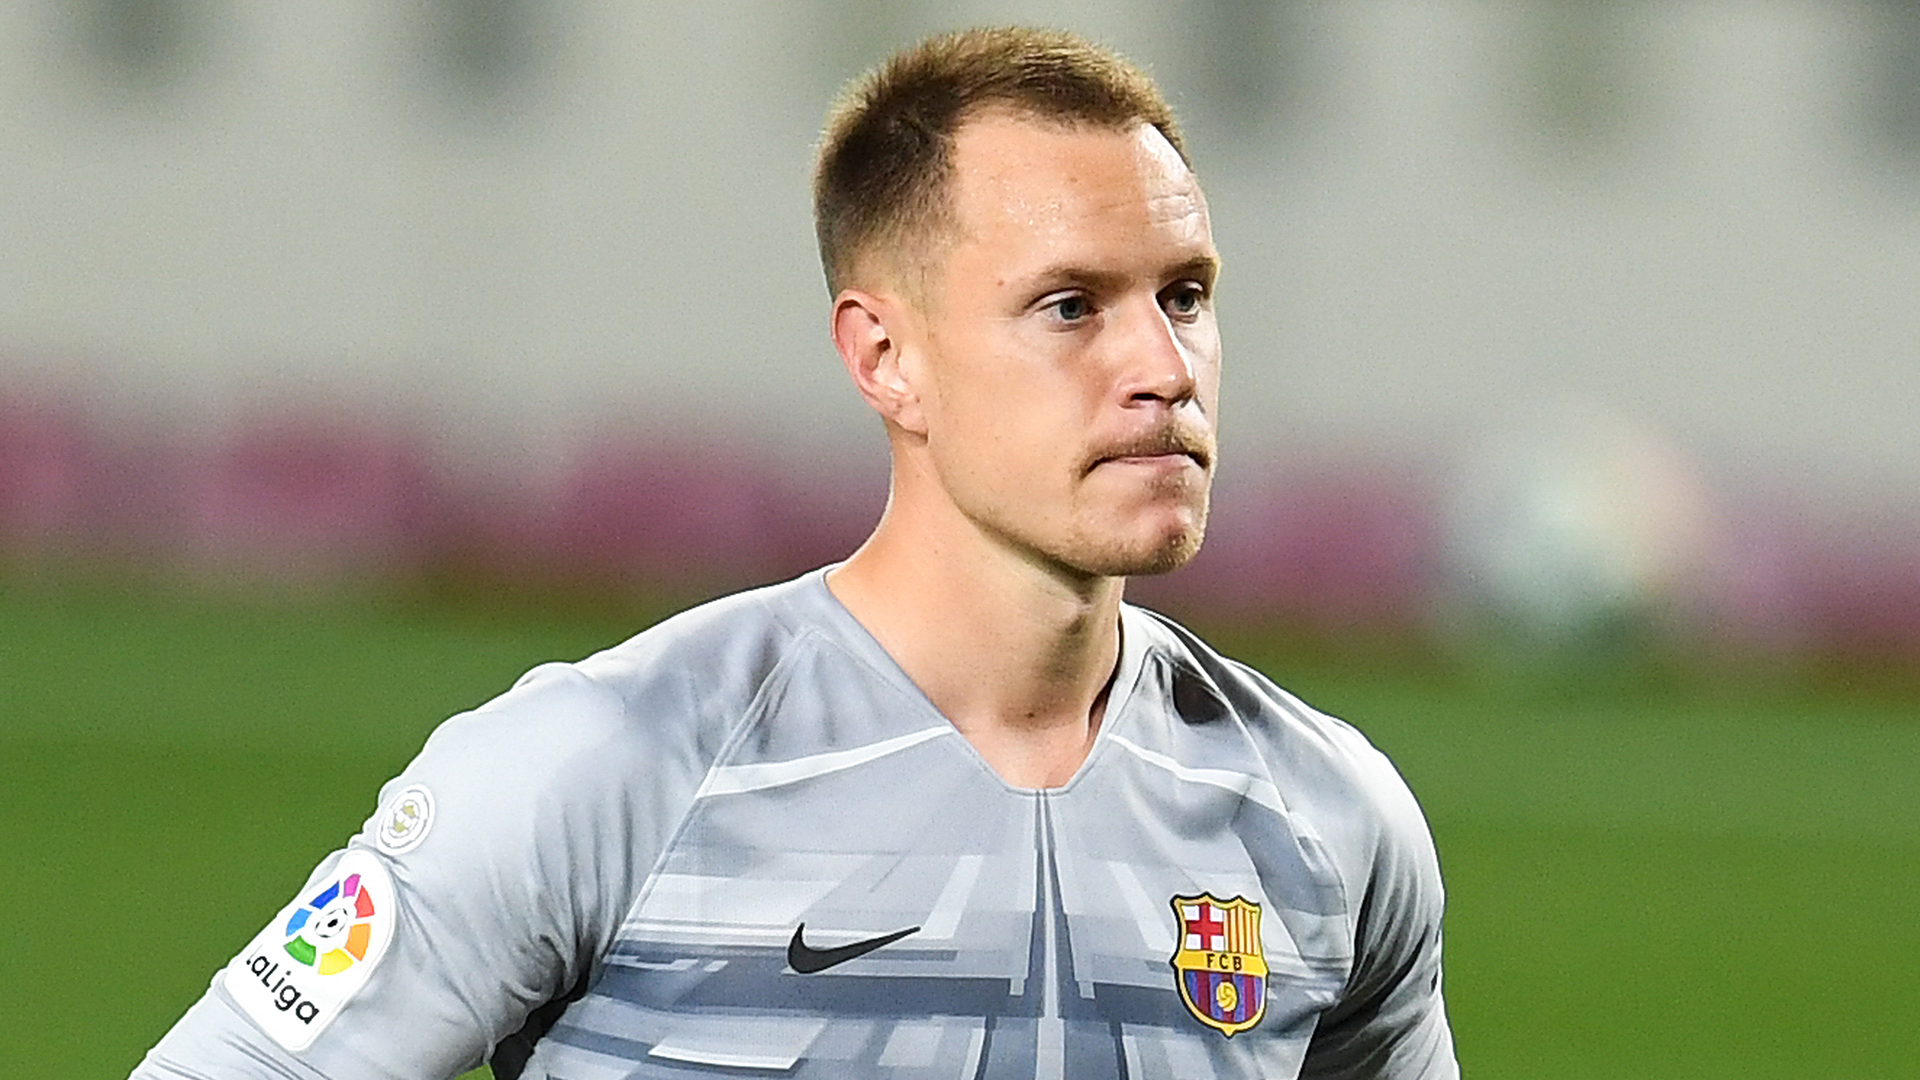 Ter Stegen still wants to be Barcelona's second-highest earner behind Messi despite reducing €24m-a-year wage demands